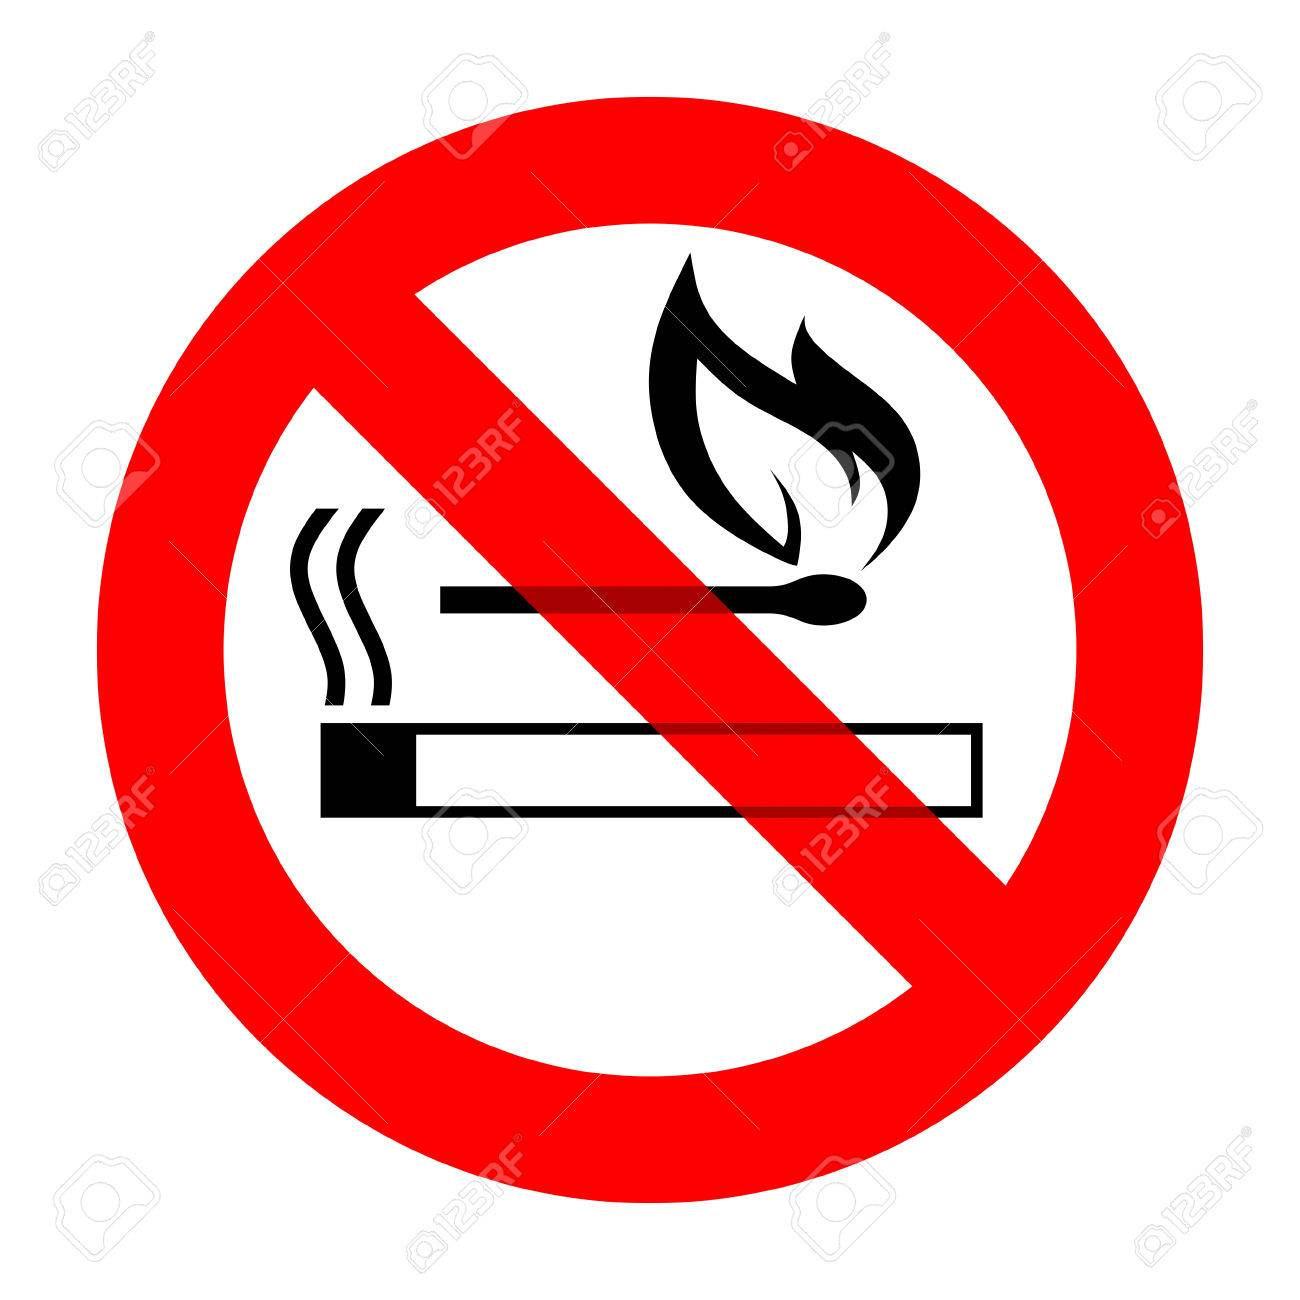 No Smoking And Open Fire Sign Template Stock Photo, Picture And ...